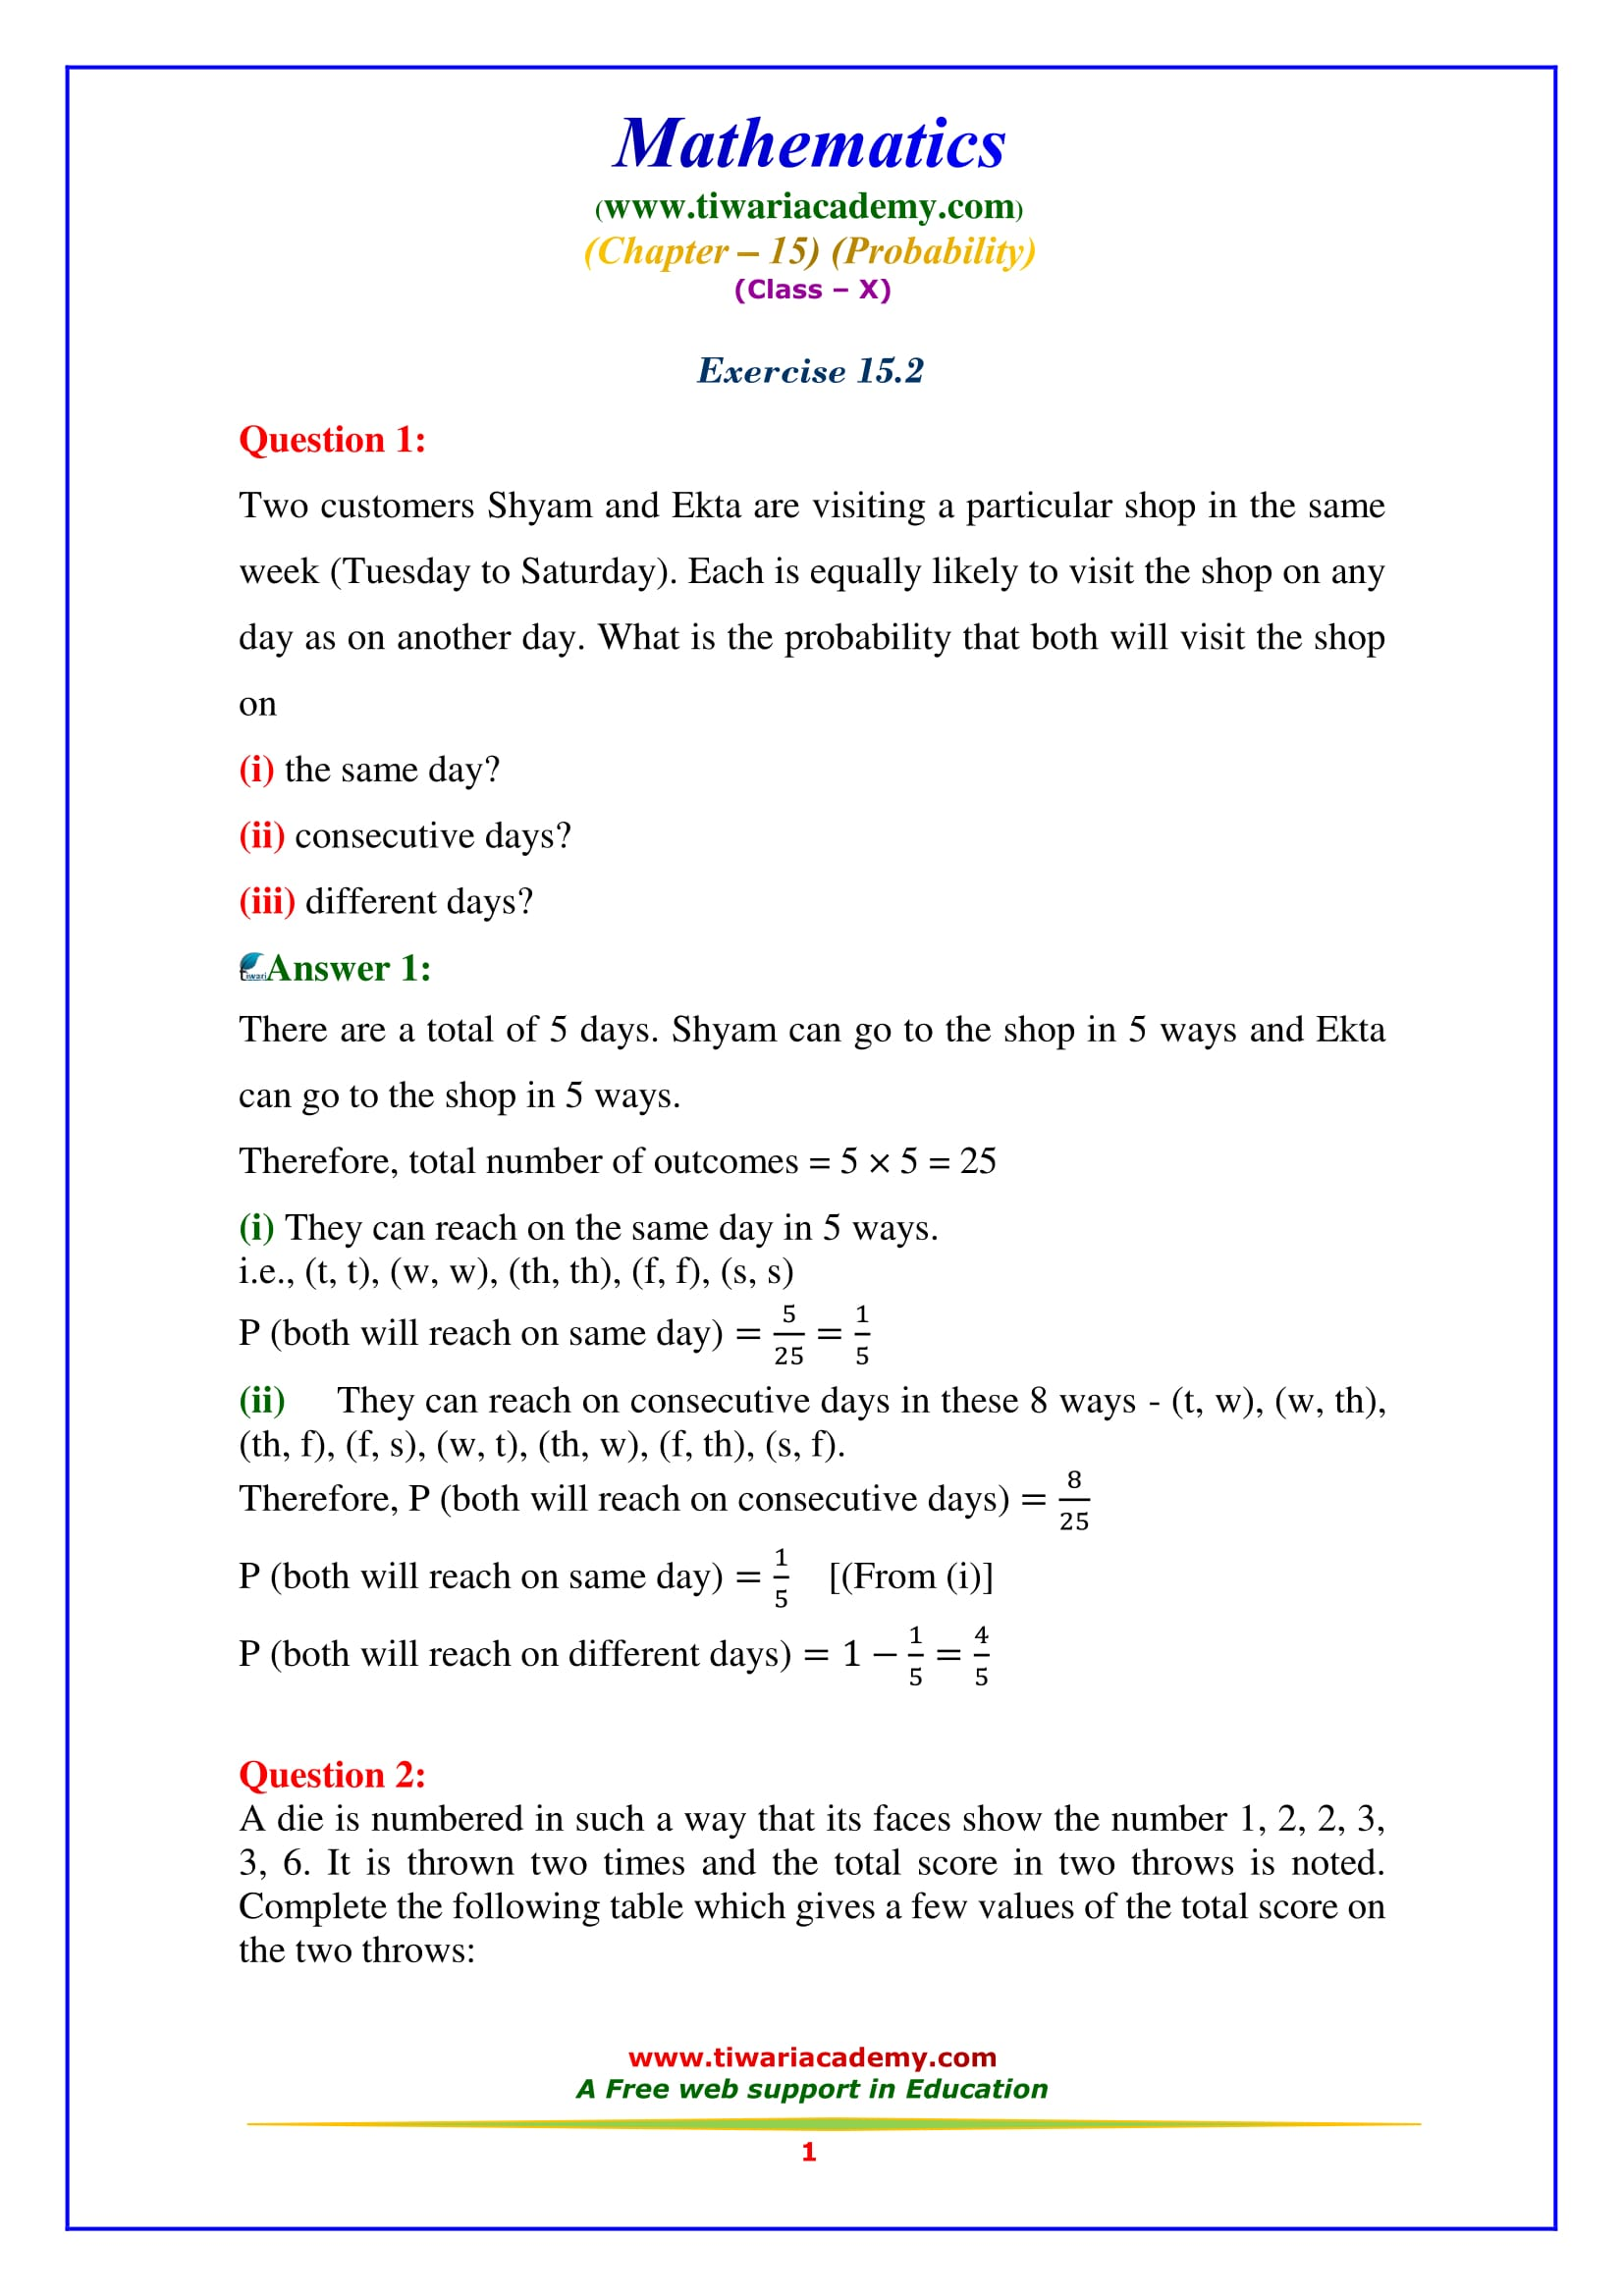 NCERT Solutions for Class 10 Maths Chapter 15 Exercise 15.2 Question 1